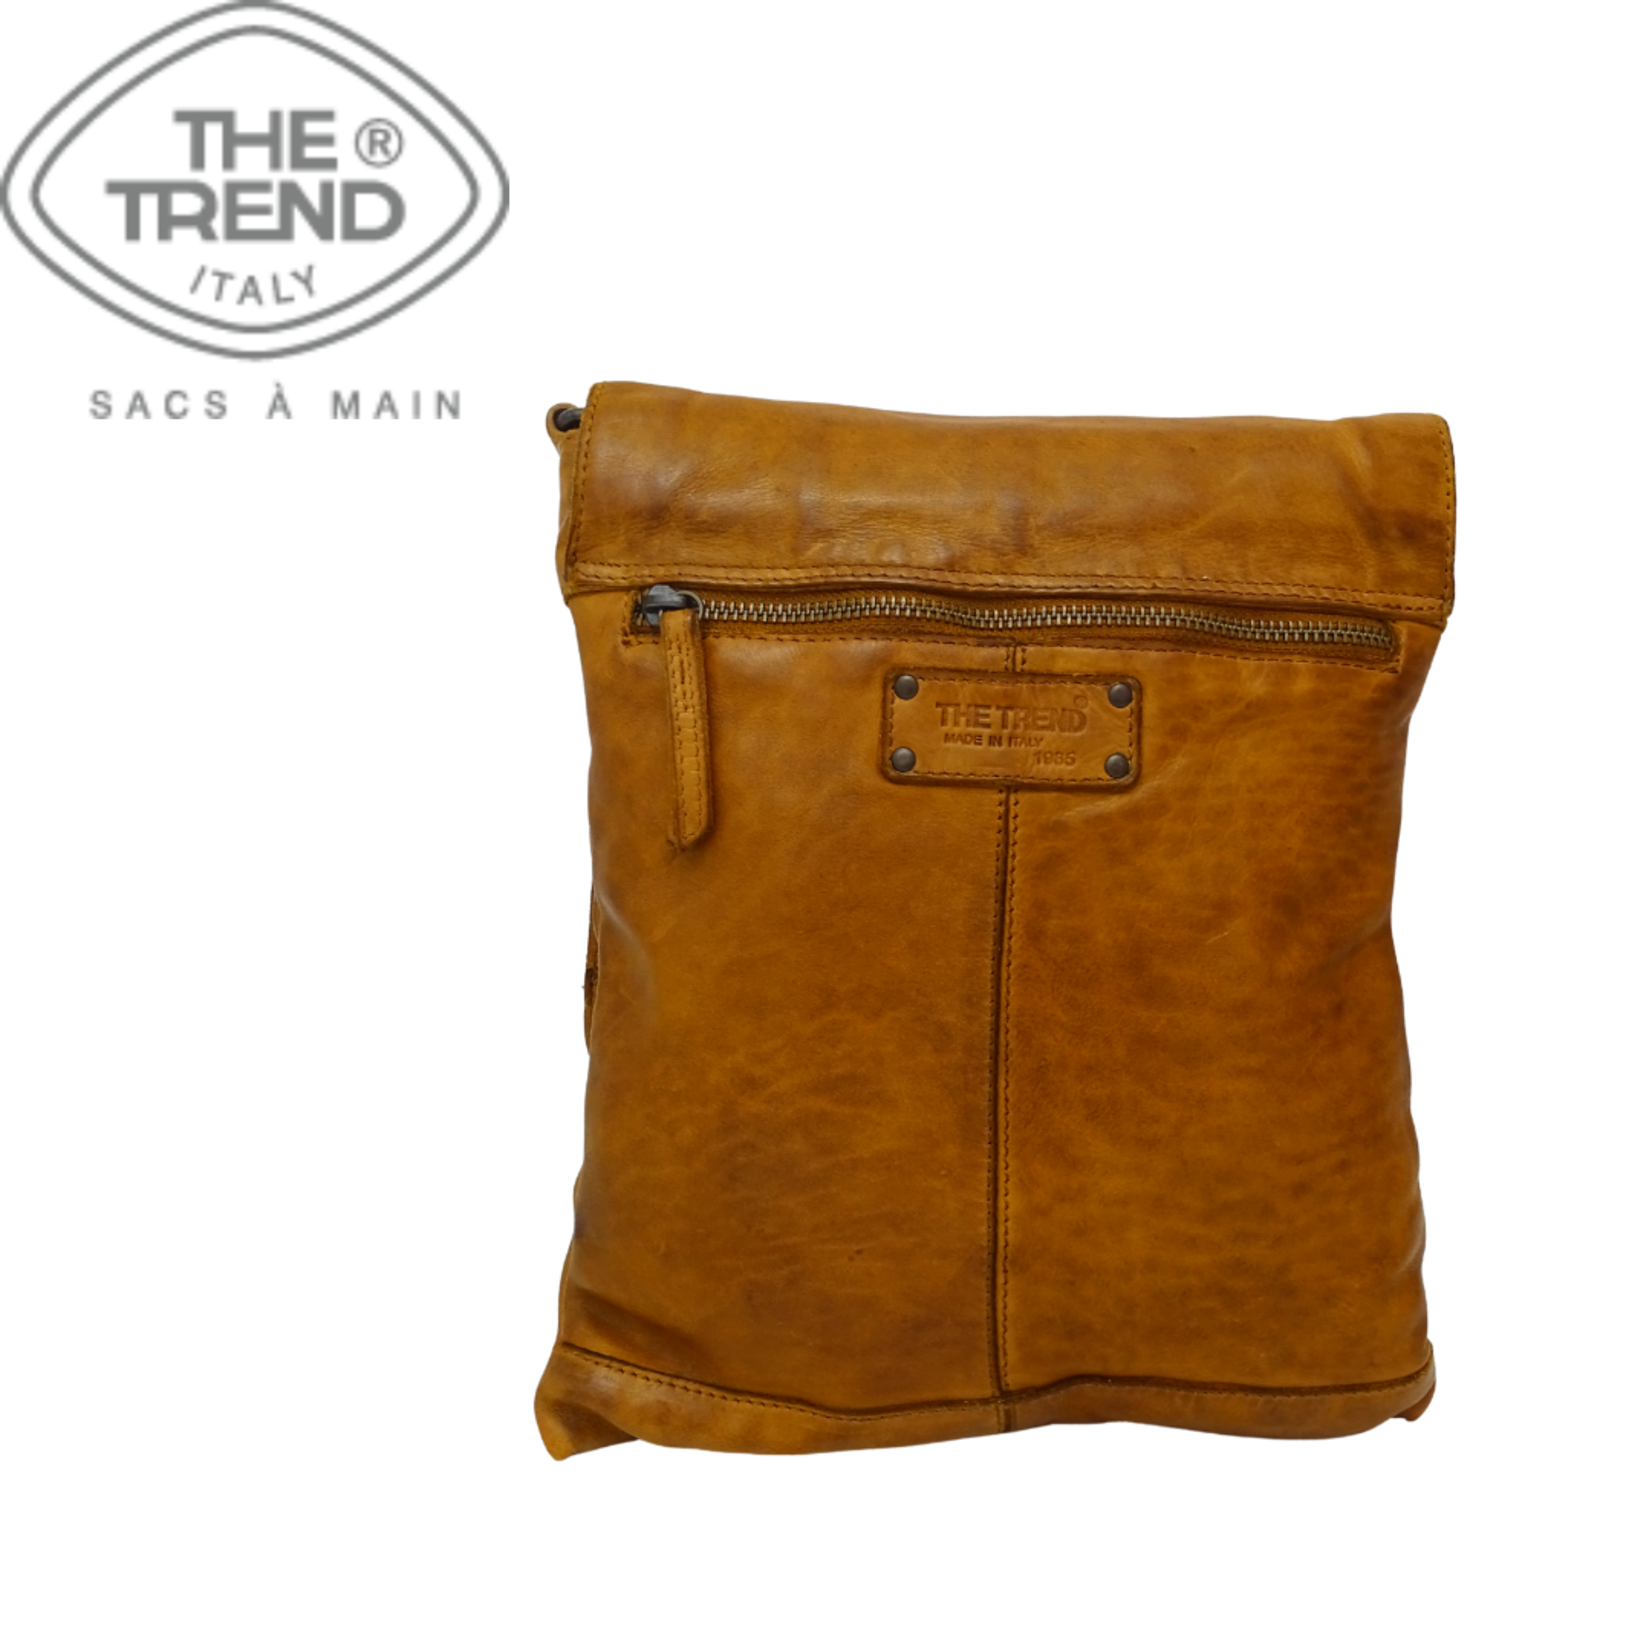 The Trend The Trend 22740 tan